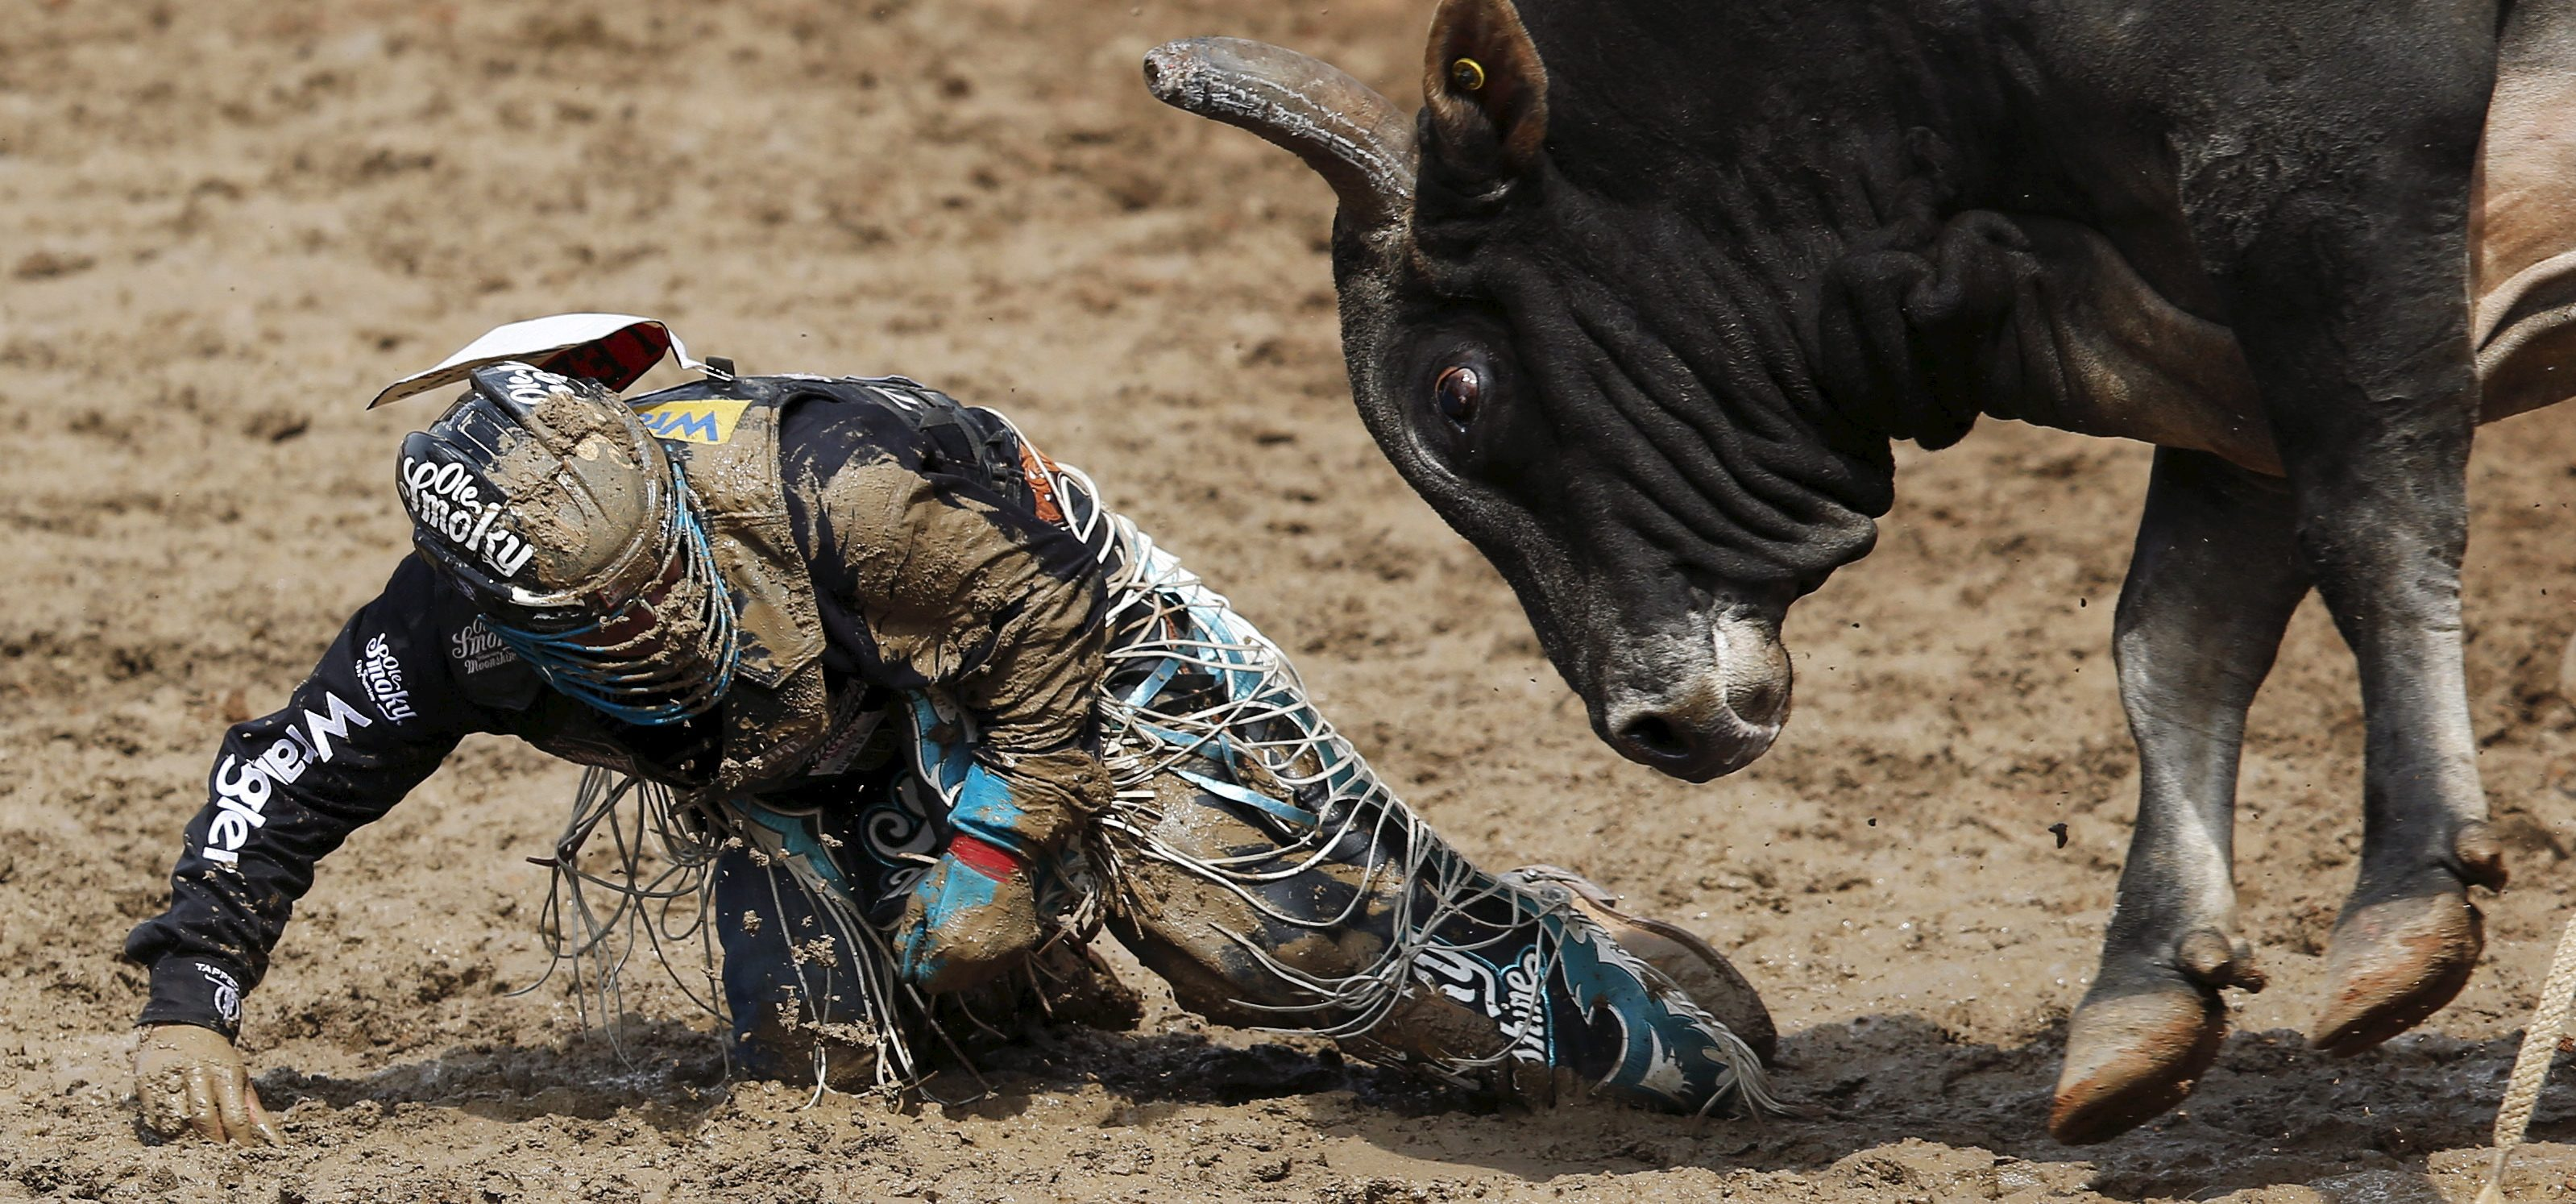 The bull Smoke Show goes after Mike Lee of Fort Worth, Texas after he got bucked off in the Bull Riding event during Championship Sunday at the finals of the Calgary Stampede rodeo in Calgary, Alberta, July 12, 2015. REUTERS/Todd Korol TPX IMAGES OF THE DAY - RTX1K4DV